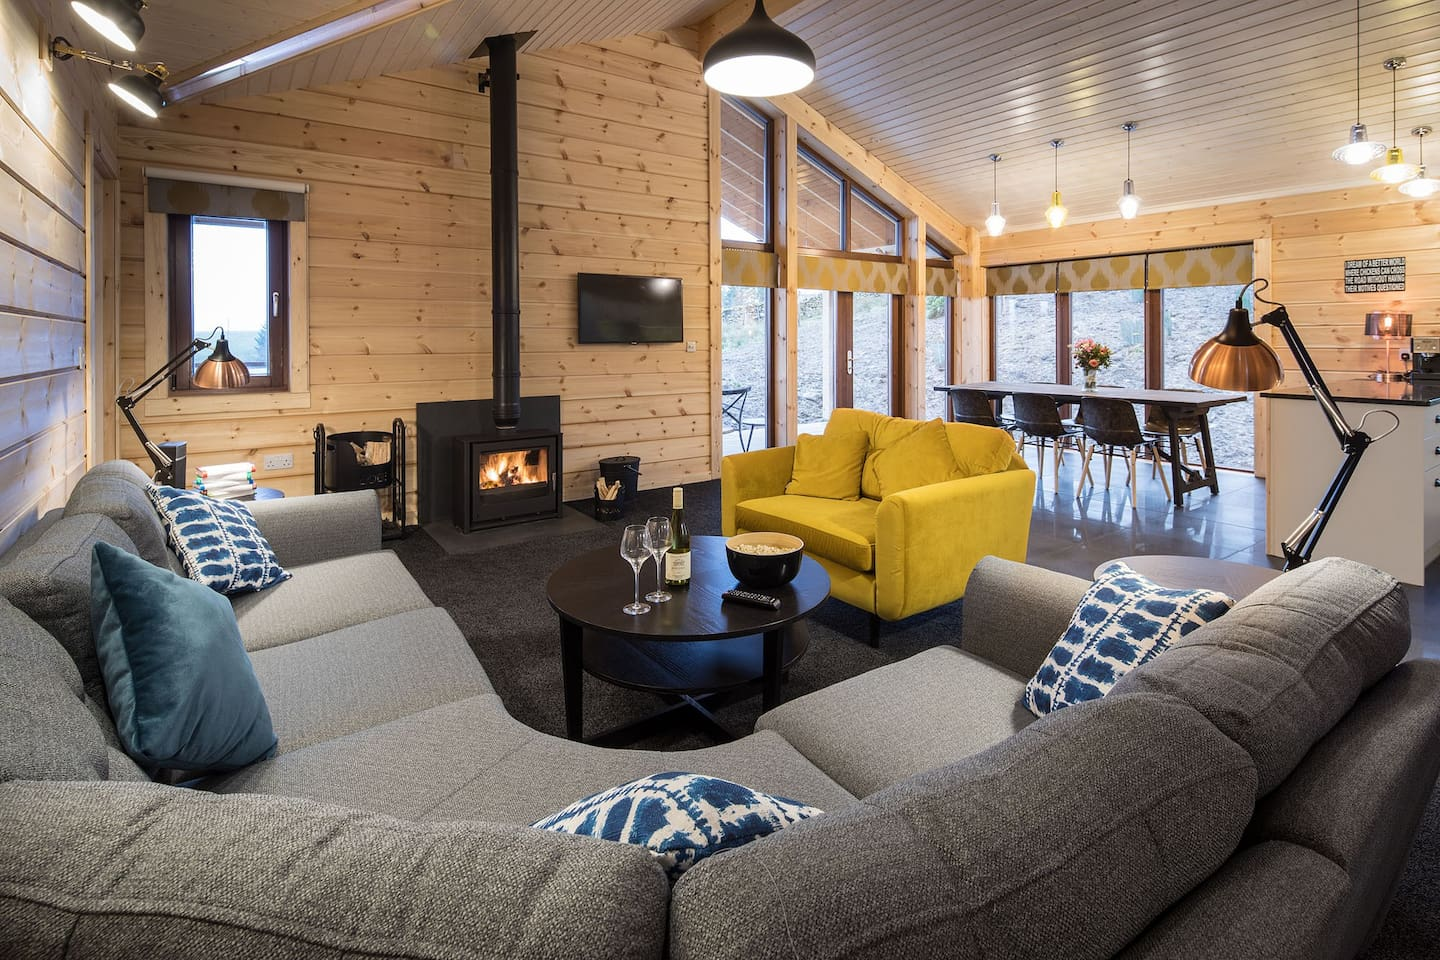 Exclusive Luxury Log Cabin, enjoy stunning mountain views, open fires and country walks, spaciously set in 7 acre private grounds in the Lake District and Yorkshire Dales National Park